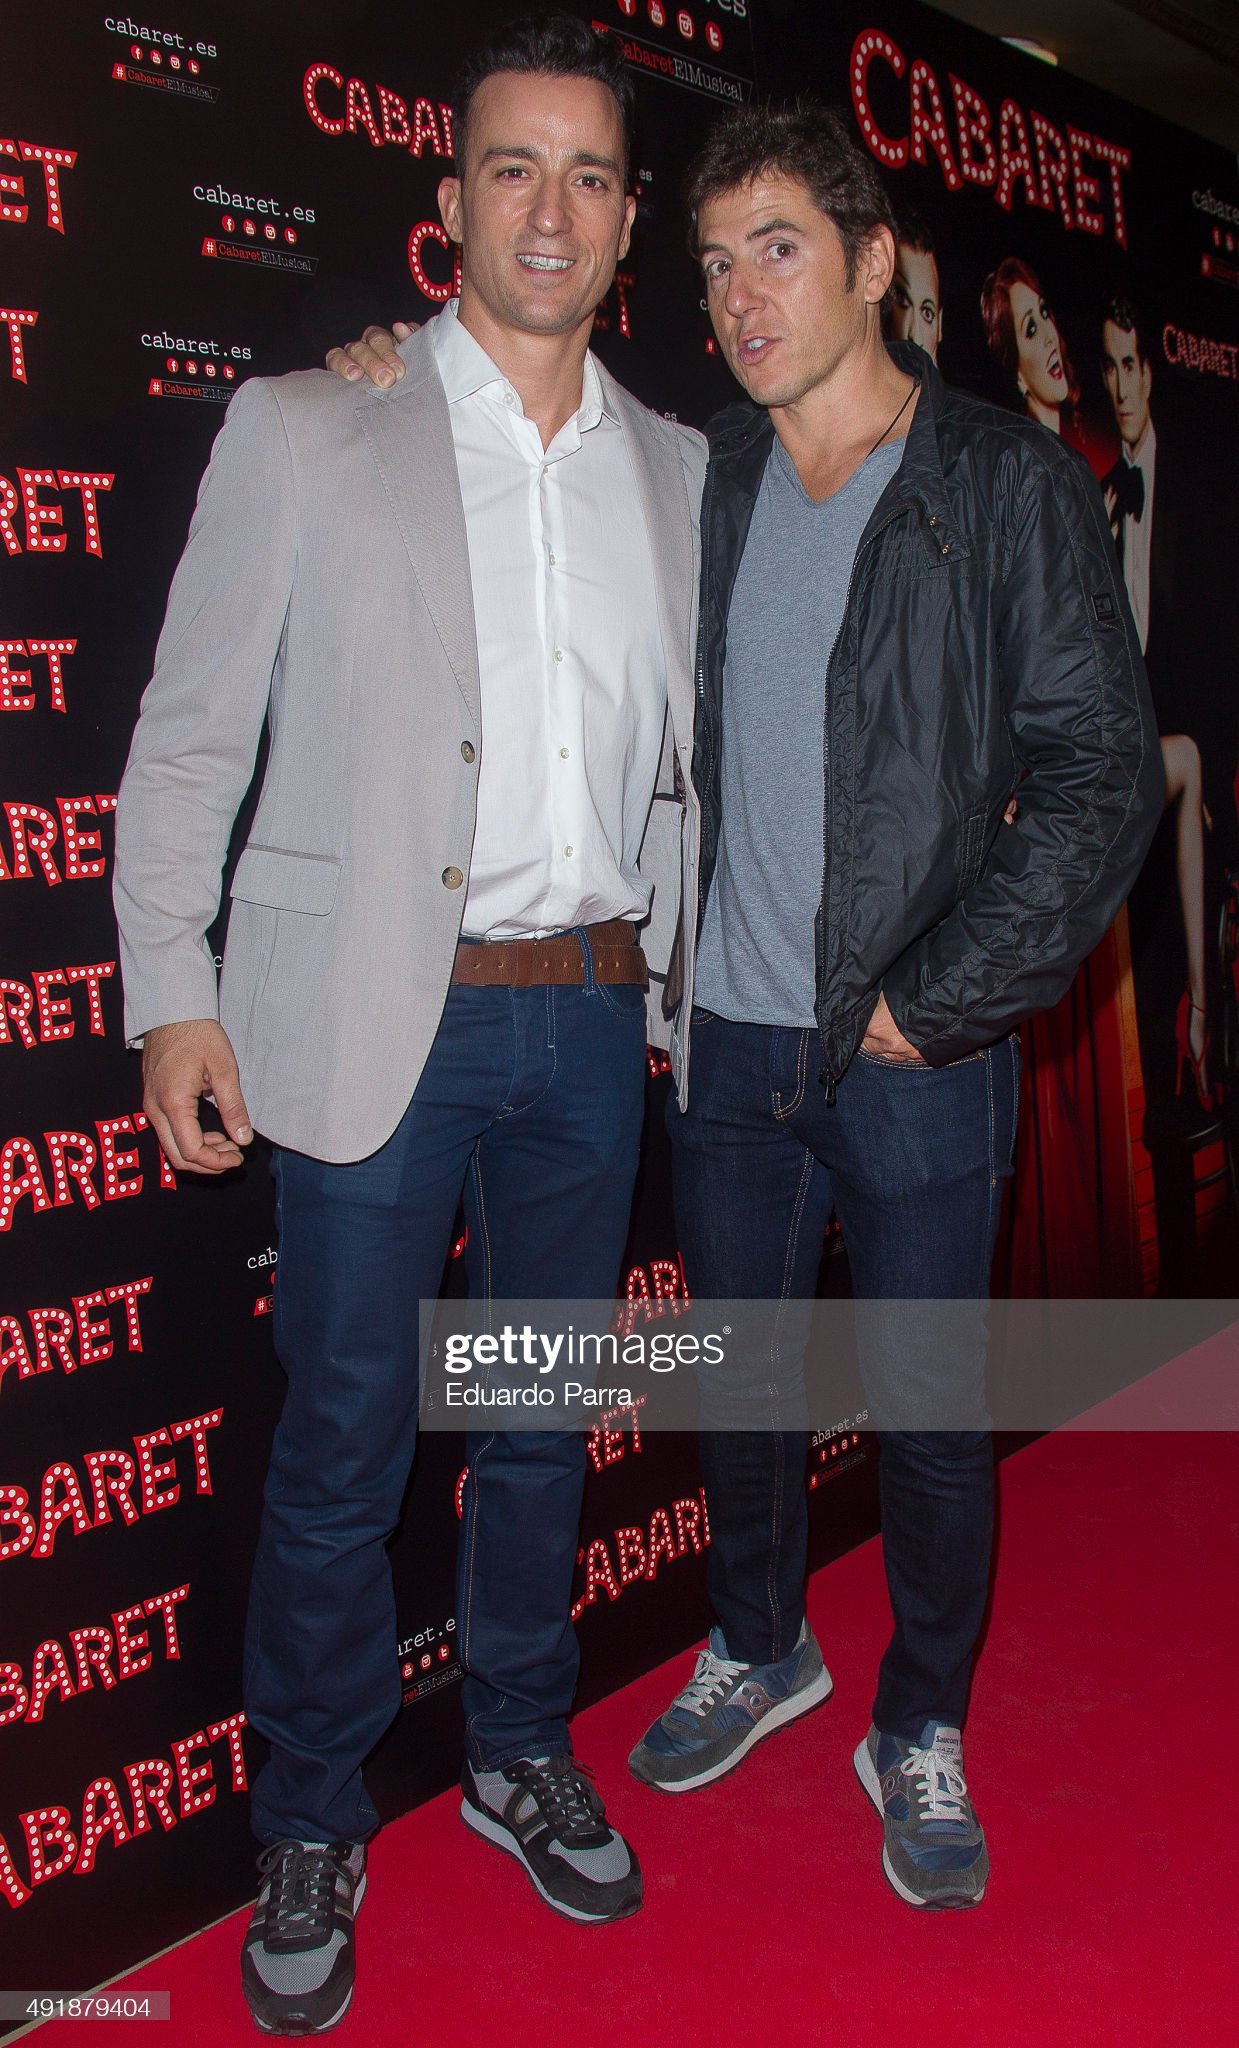 ¿Cuánto mide Pablo Puyol? Actor-pablo-puyol-and-manel-fuentes-attend-thecabaret-broadway-at-picture-id491879404?s=2048x2048